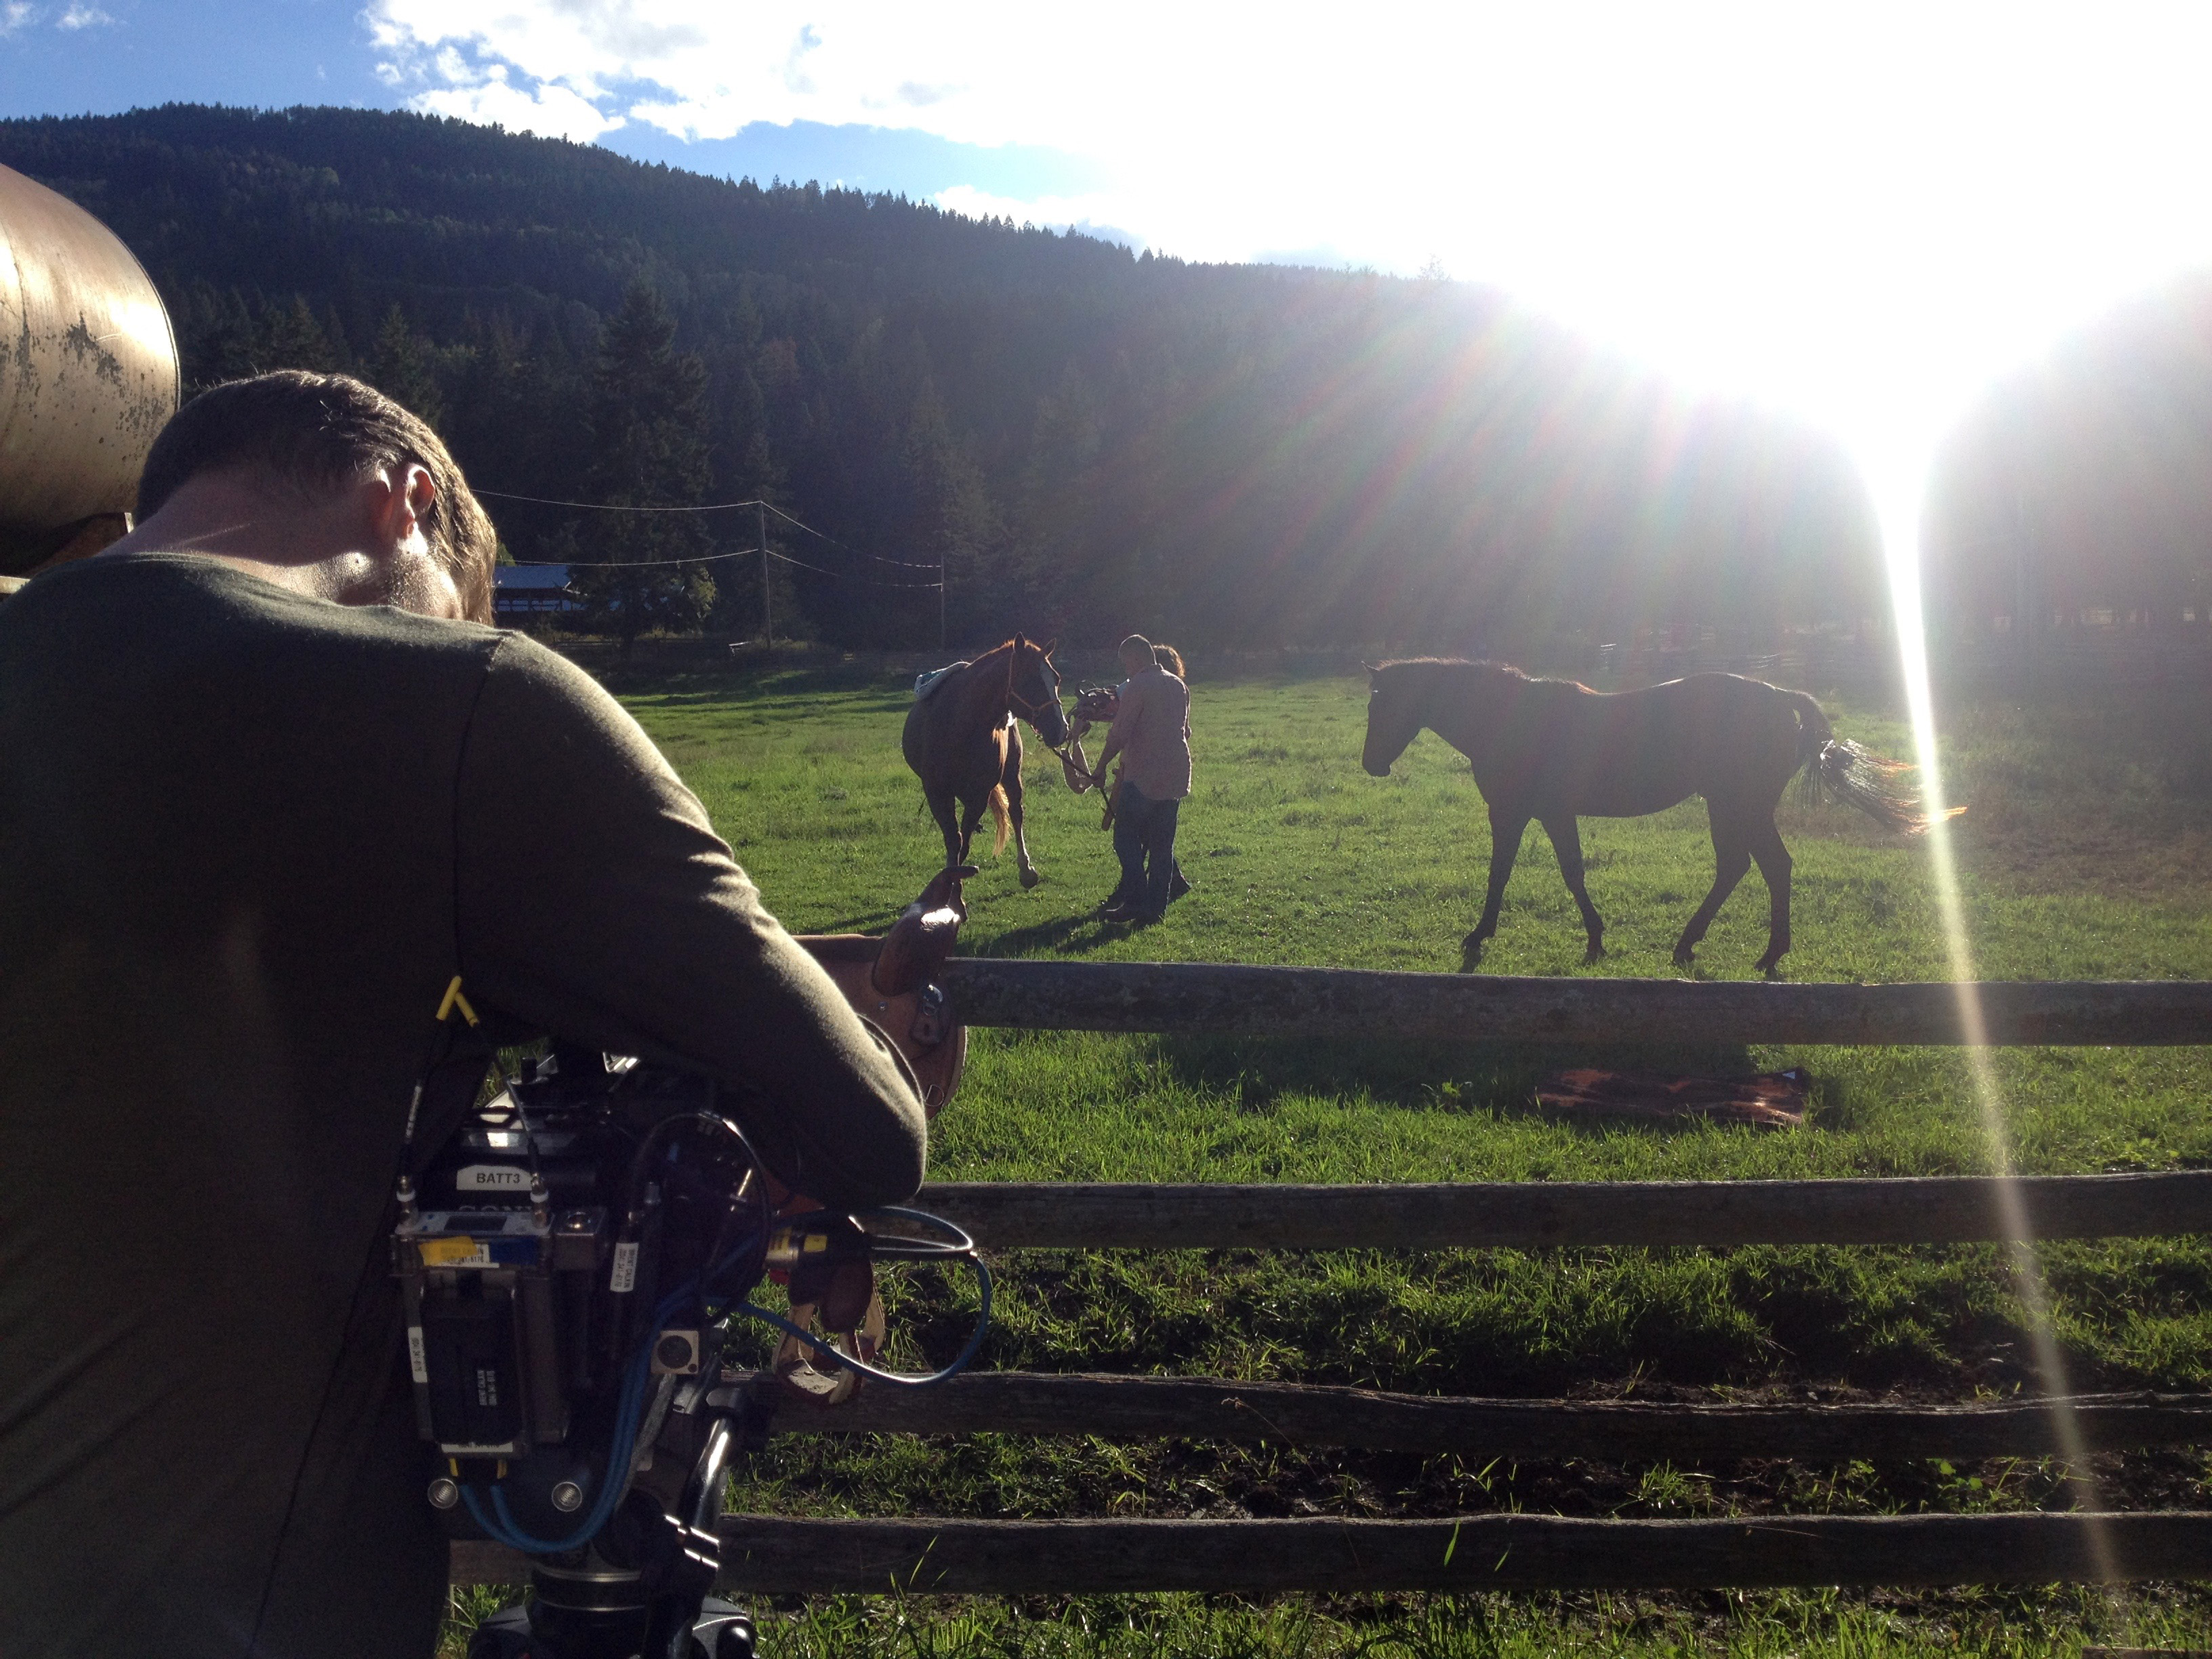 ART21 filming Brian Jungen at his ranch in North Okanagan, Canada, 2015. Behind the scenes of ART21's series Art in the Twenty-First Century, Season 8, 2016. Photo: Wesley Miller. © ART21, Inc. 2016.